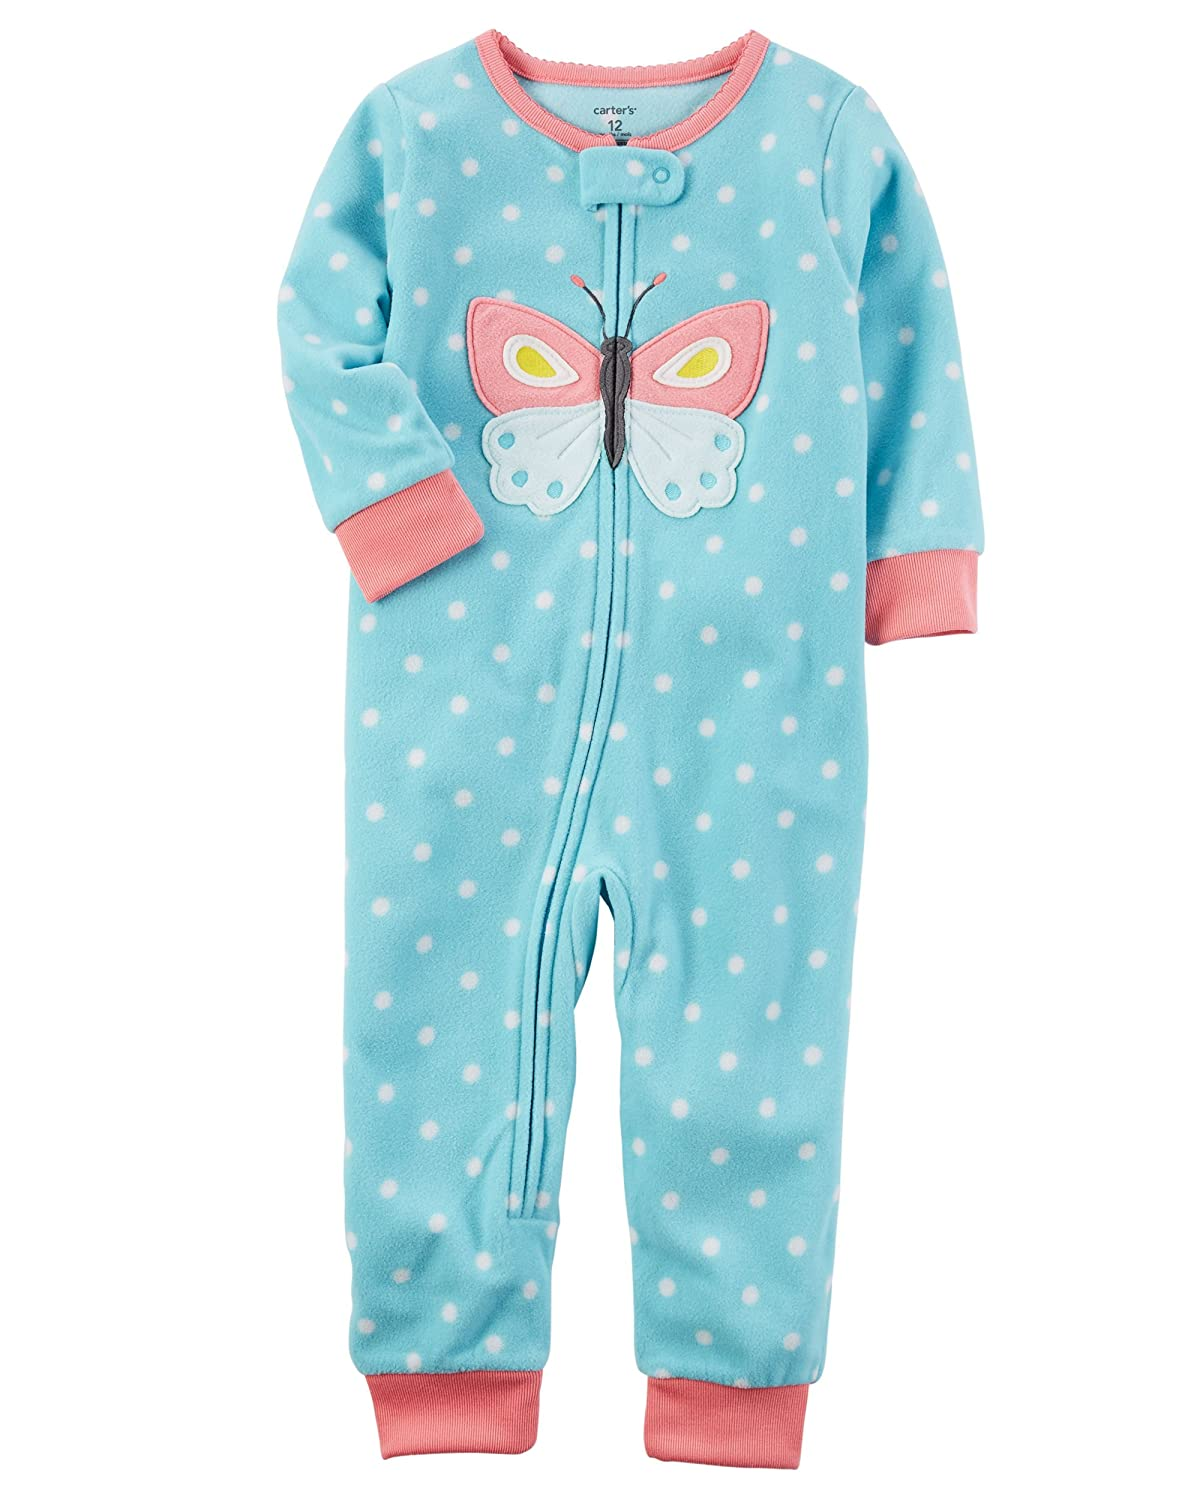 Carter's Girls' 1-Piece Footless Fleece PJs